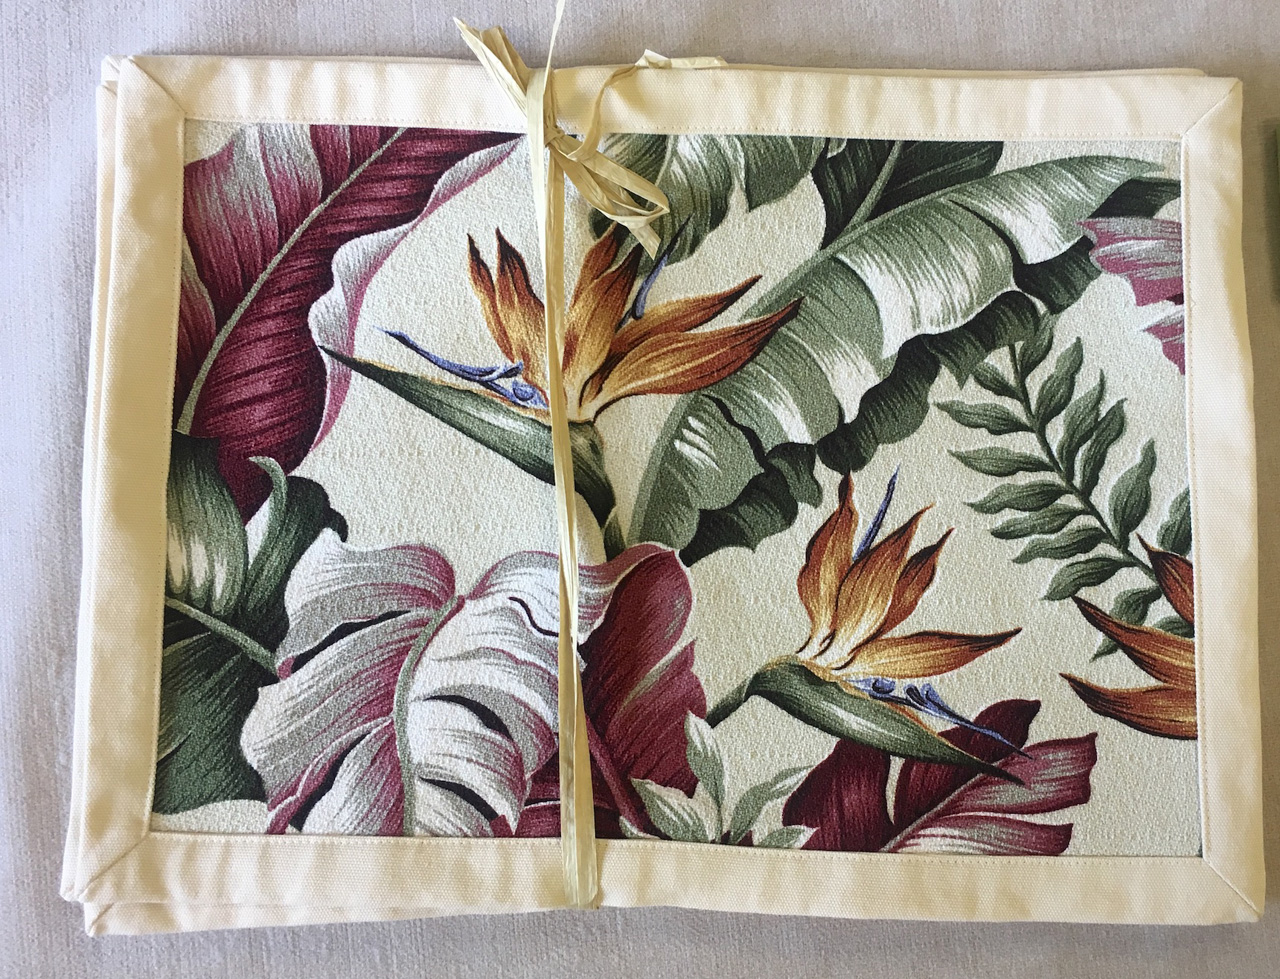 Placemat set by Bonnie Warren in bird of paradise design